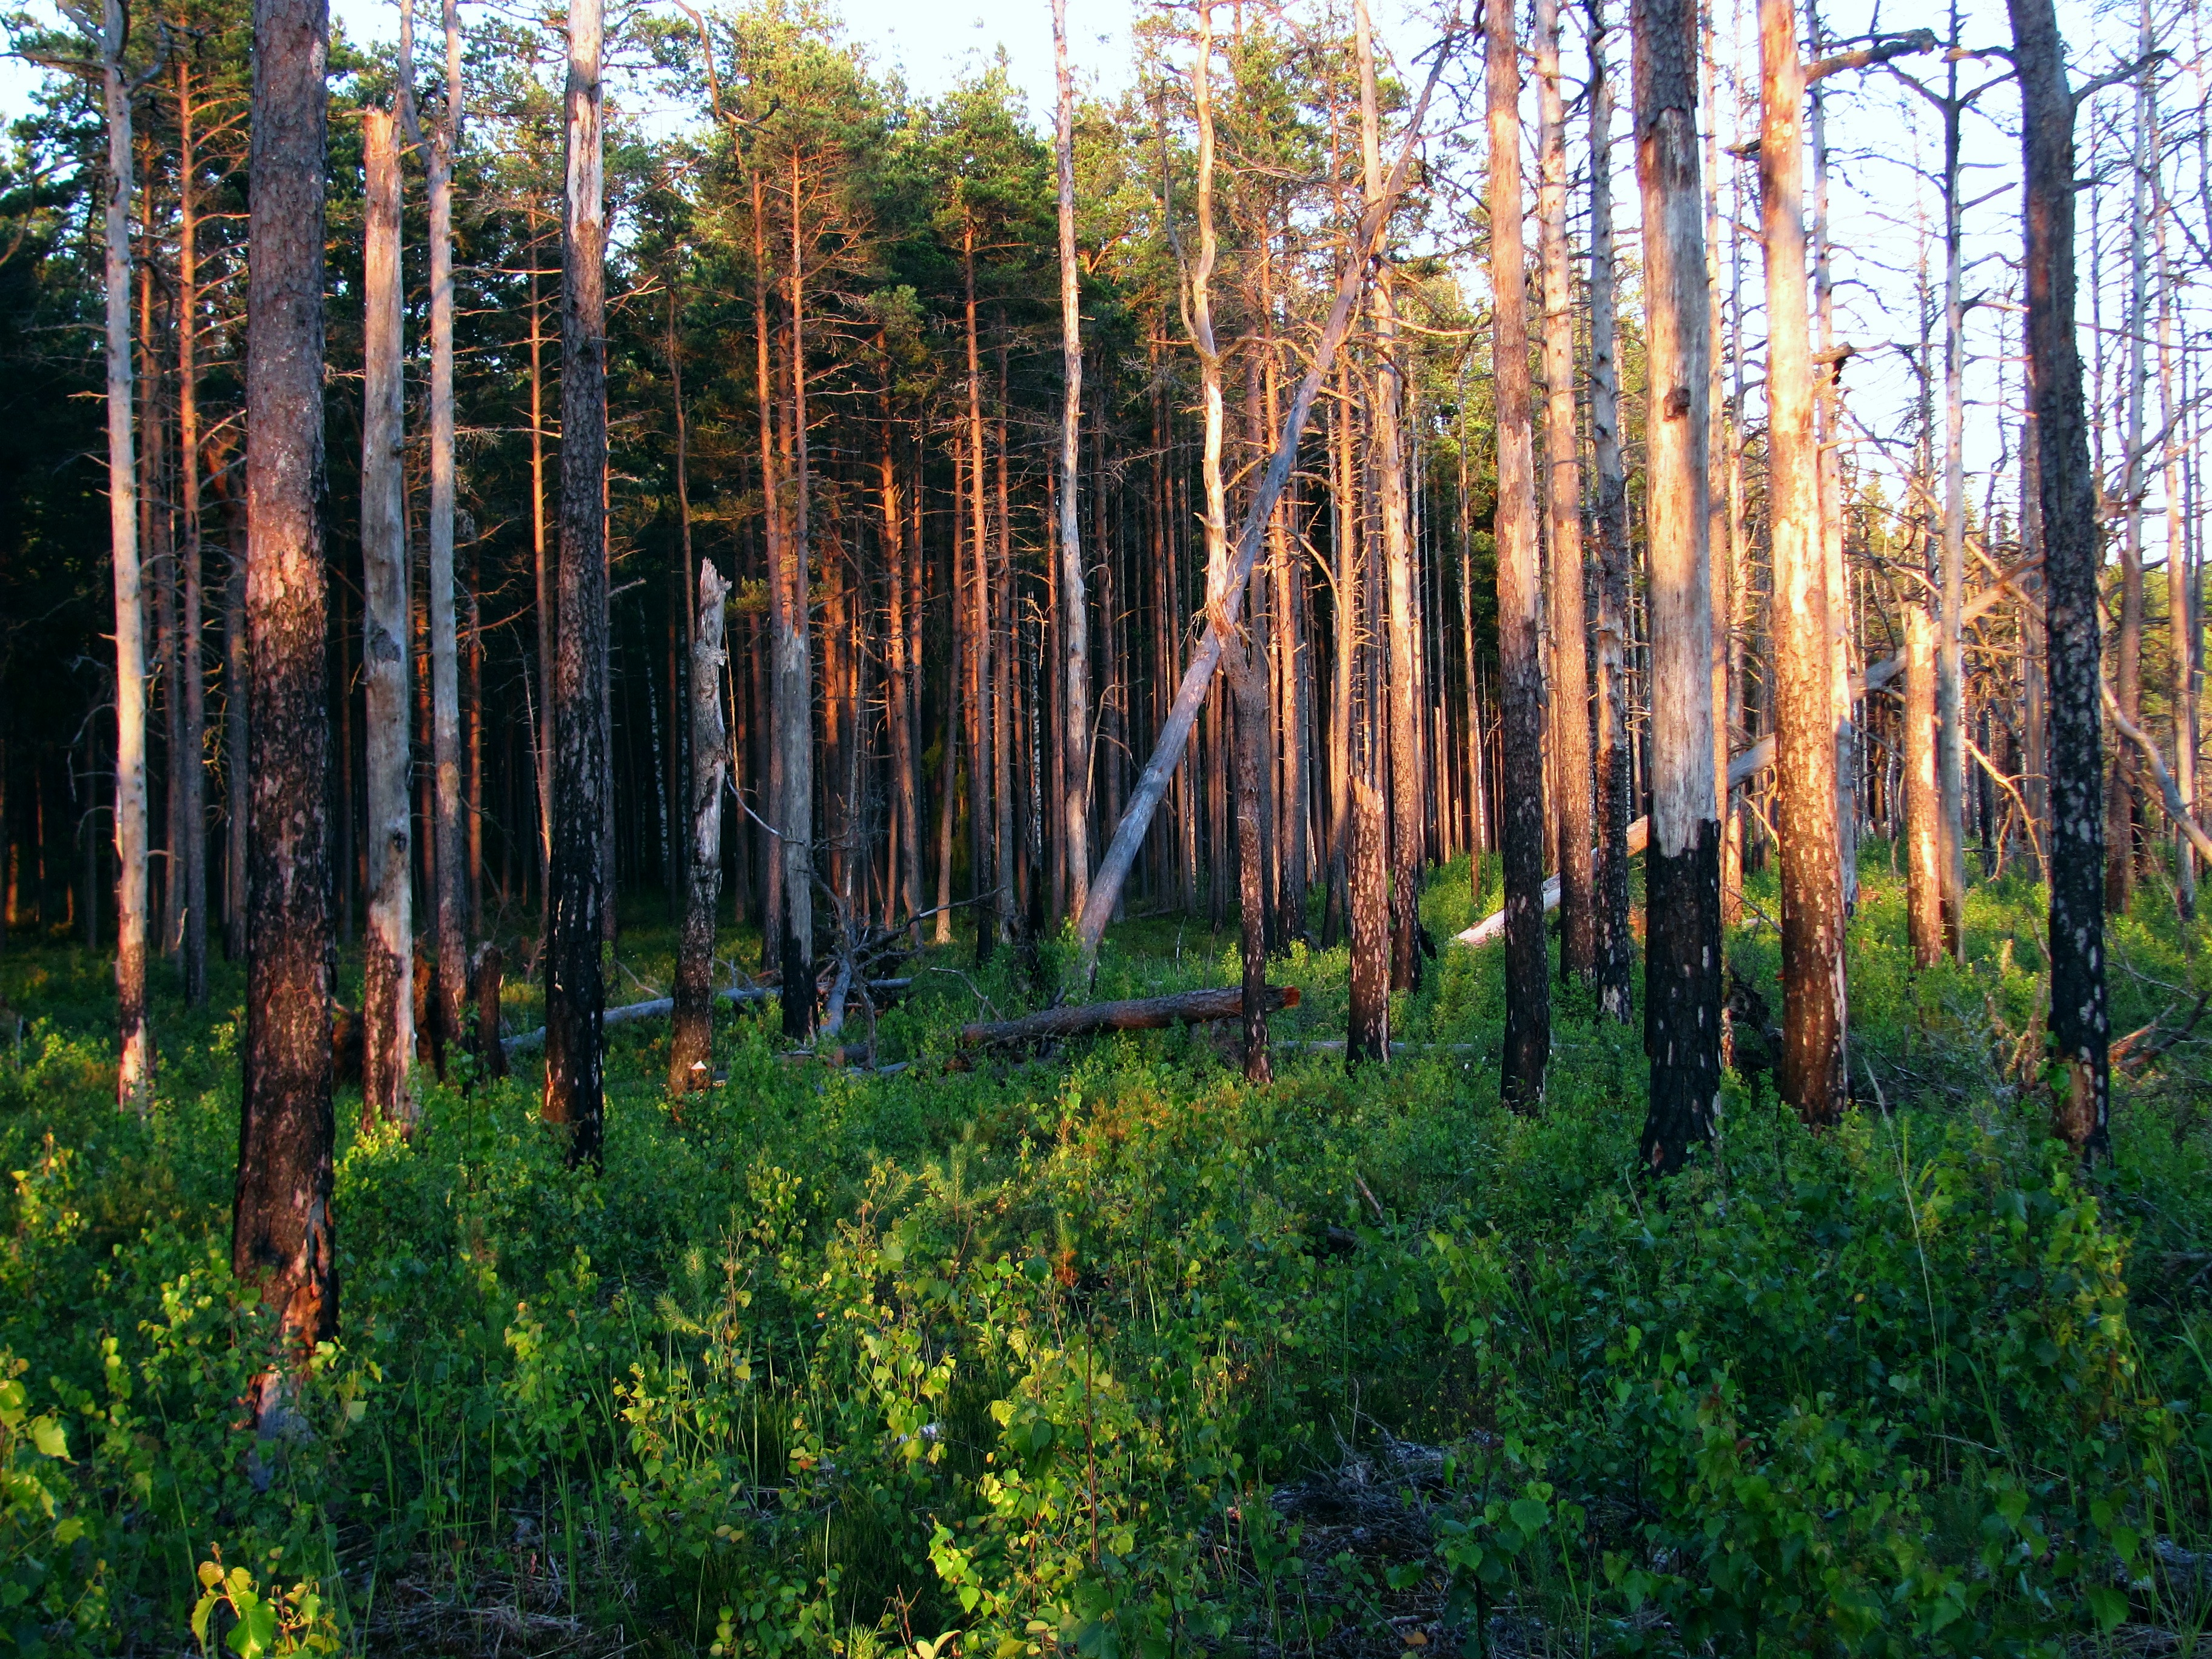 File:Boreal pine forest 7 years after fire, 2013-07.jpg ...